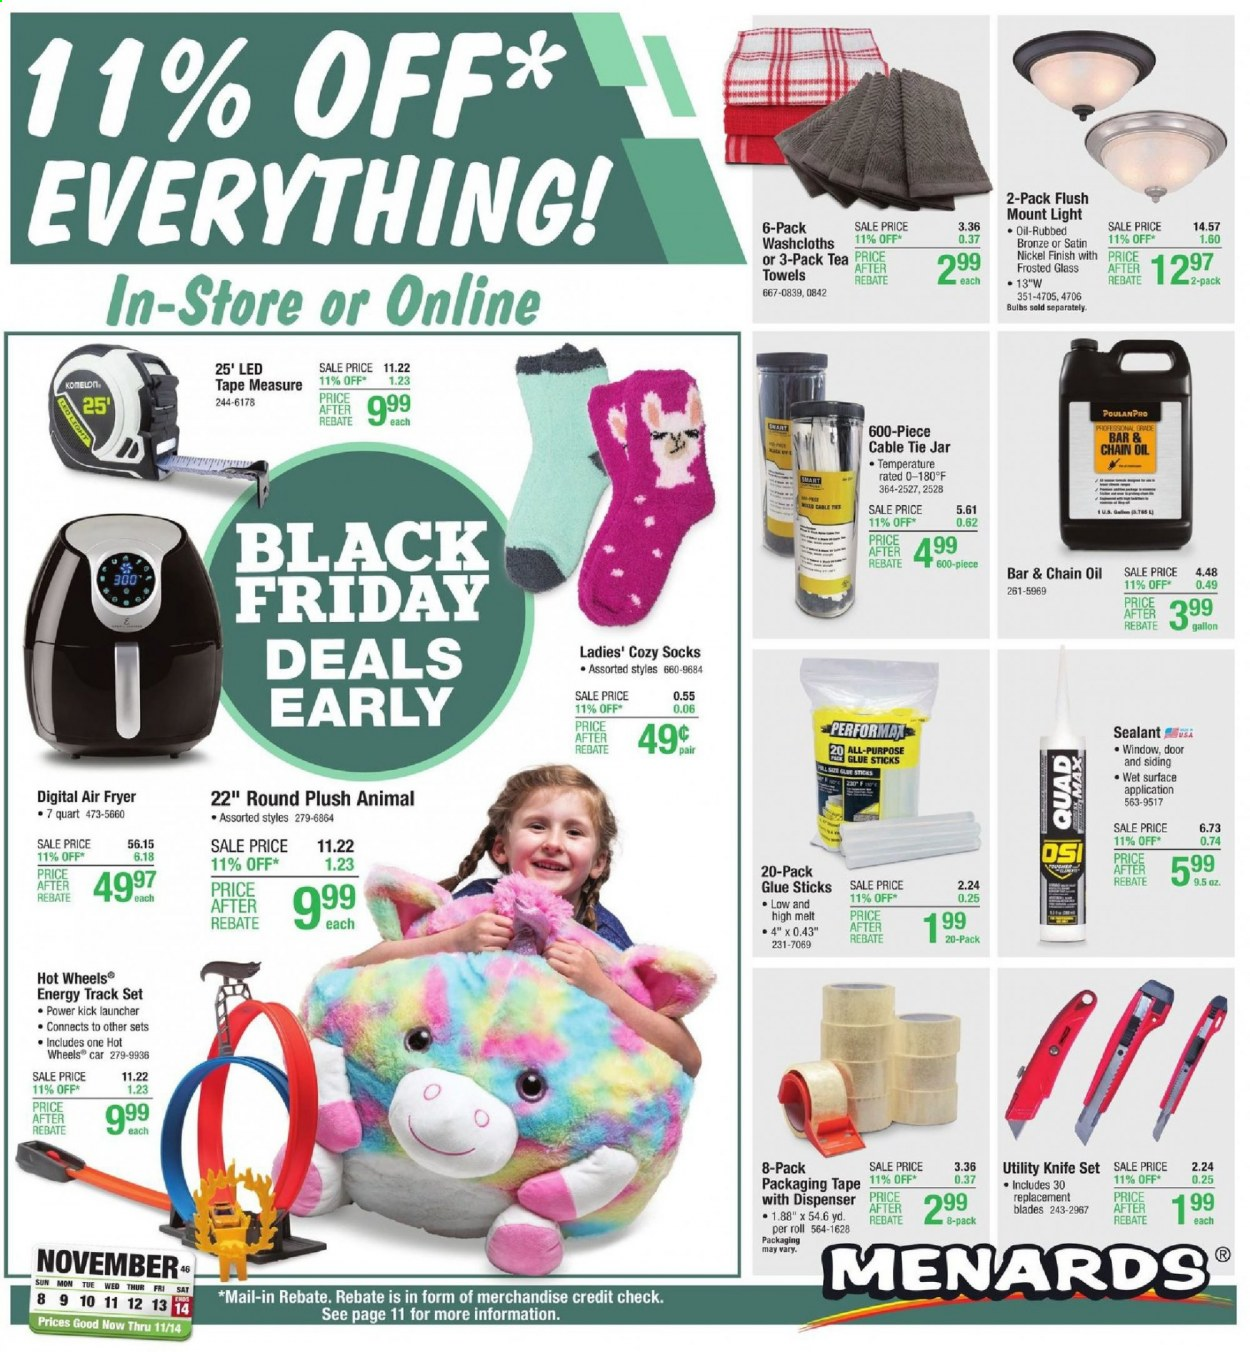 Menards Flyer - 11.08.2020 - 11.14.2020 - Sales products - bulb, cable tie jar, door, fryer, knife, replacement blades, siding, socks, surface, tape, tape measure, tea, tie, towel, jar, air fryer, hot wheels, glue, glue stick, cable, oil, led. Page 1.